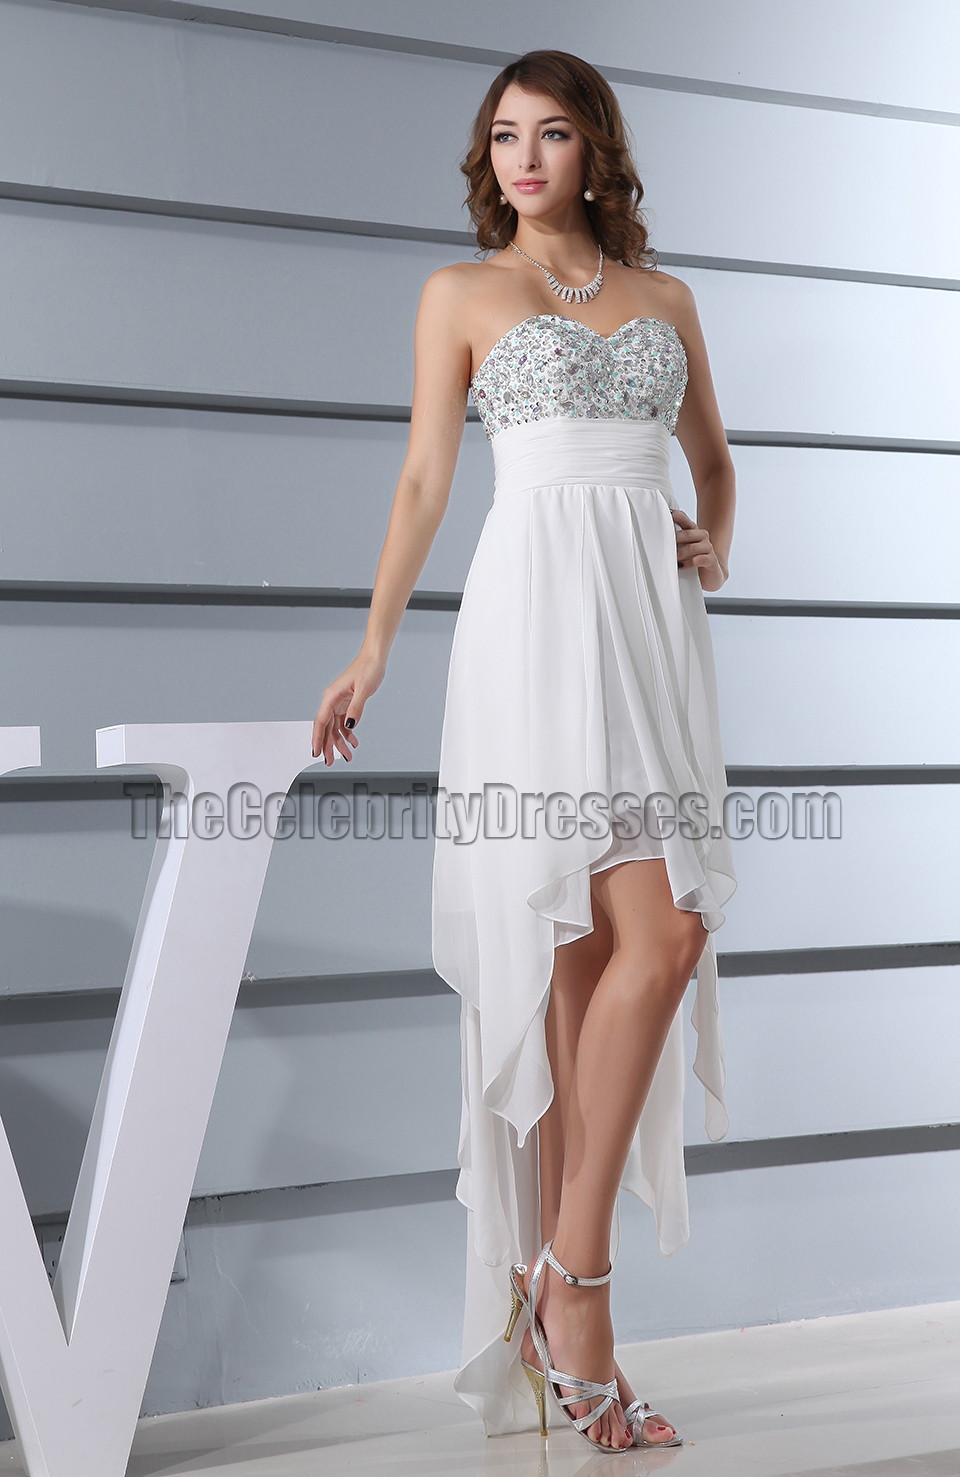 Chic Asymmetric White Cocktail Dress Prom Evening Gown ...